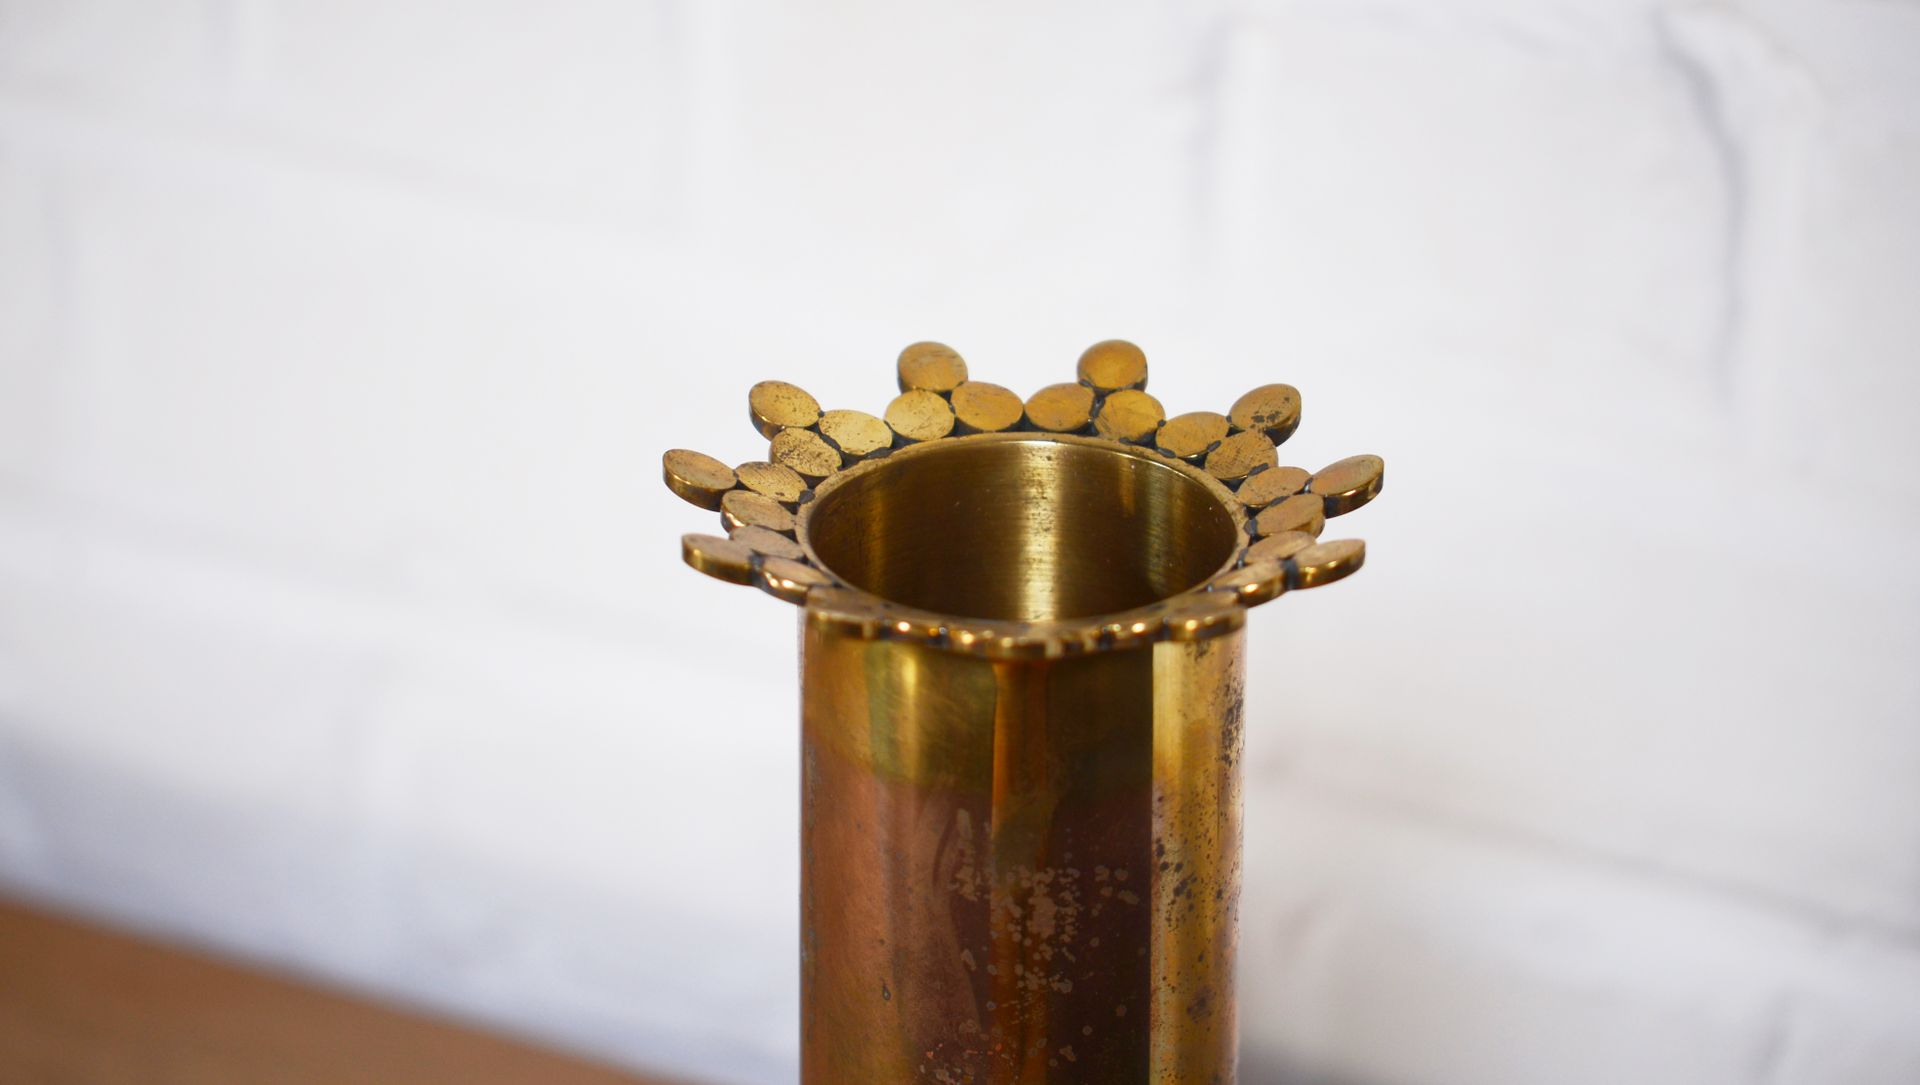 Vintage solid brass crown vase by pierre forssell for skultuna for vintage solid brass crown vase by pierre forssell for skultuna reviewsmspy